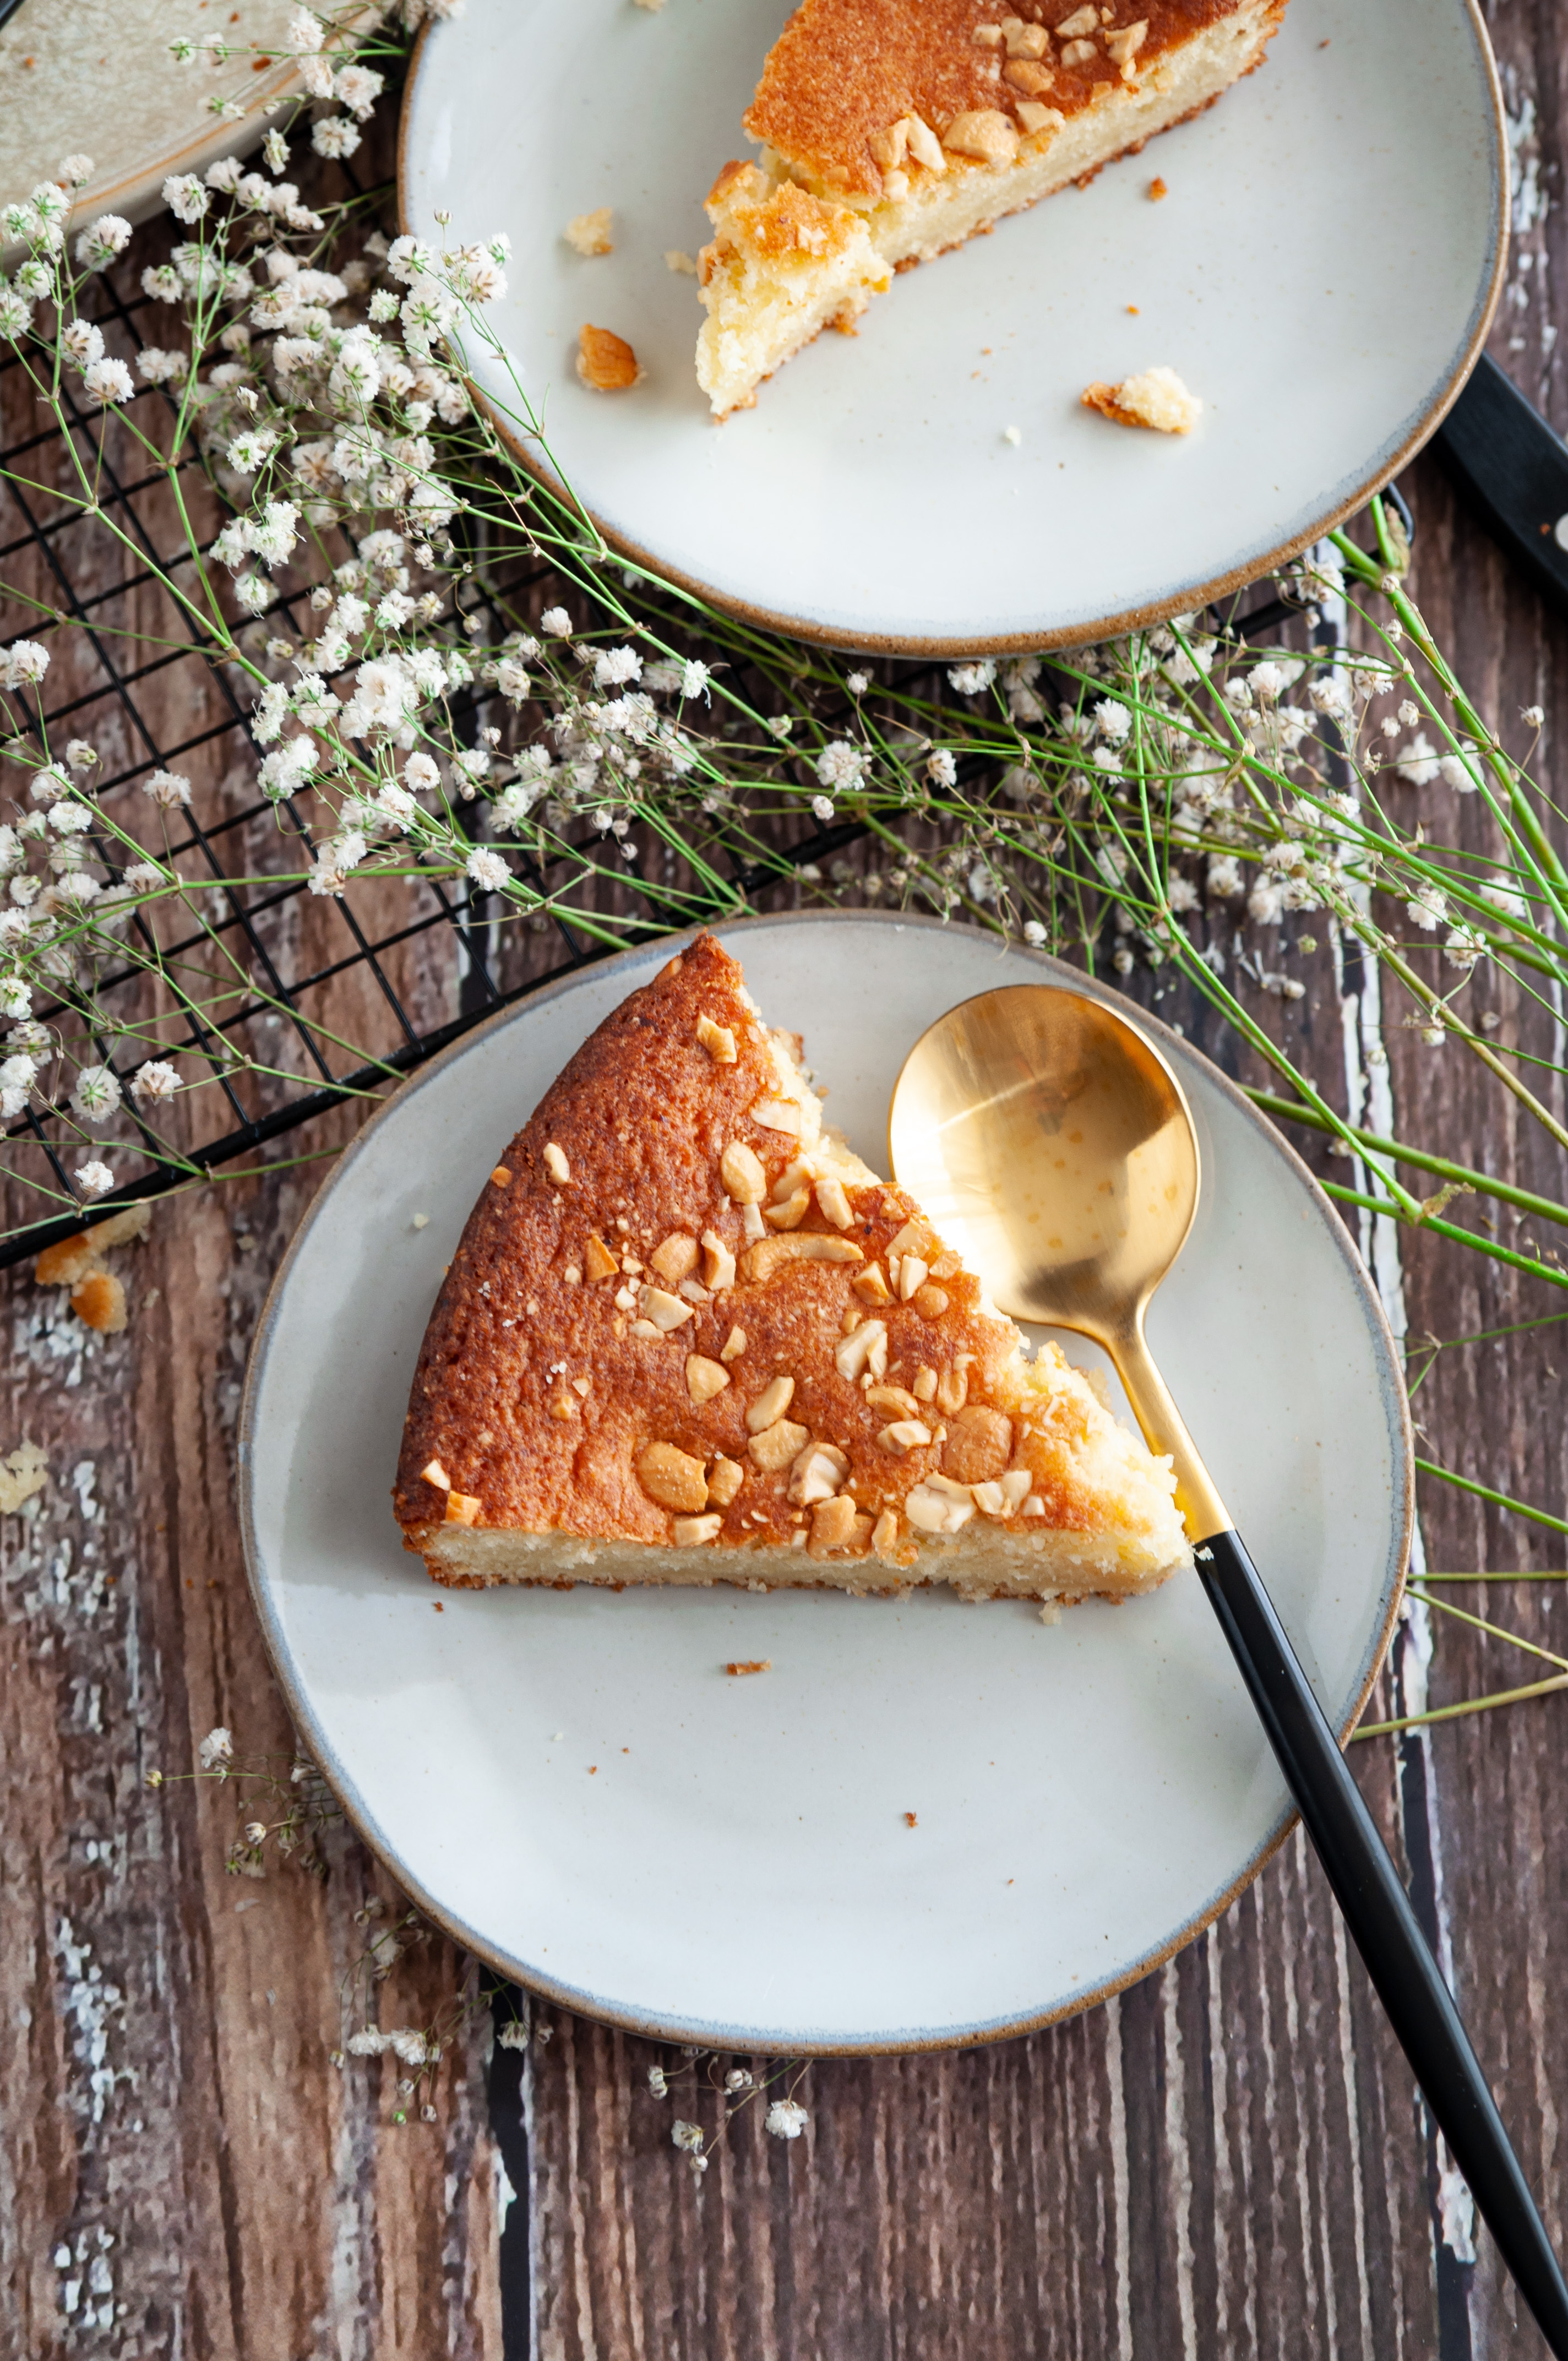 A light and fluffy Gluten Free almond flour cake bursting with flavors from vanilla. It's great with or without frosting and takes only one bowl to make the cake.